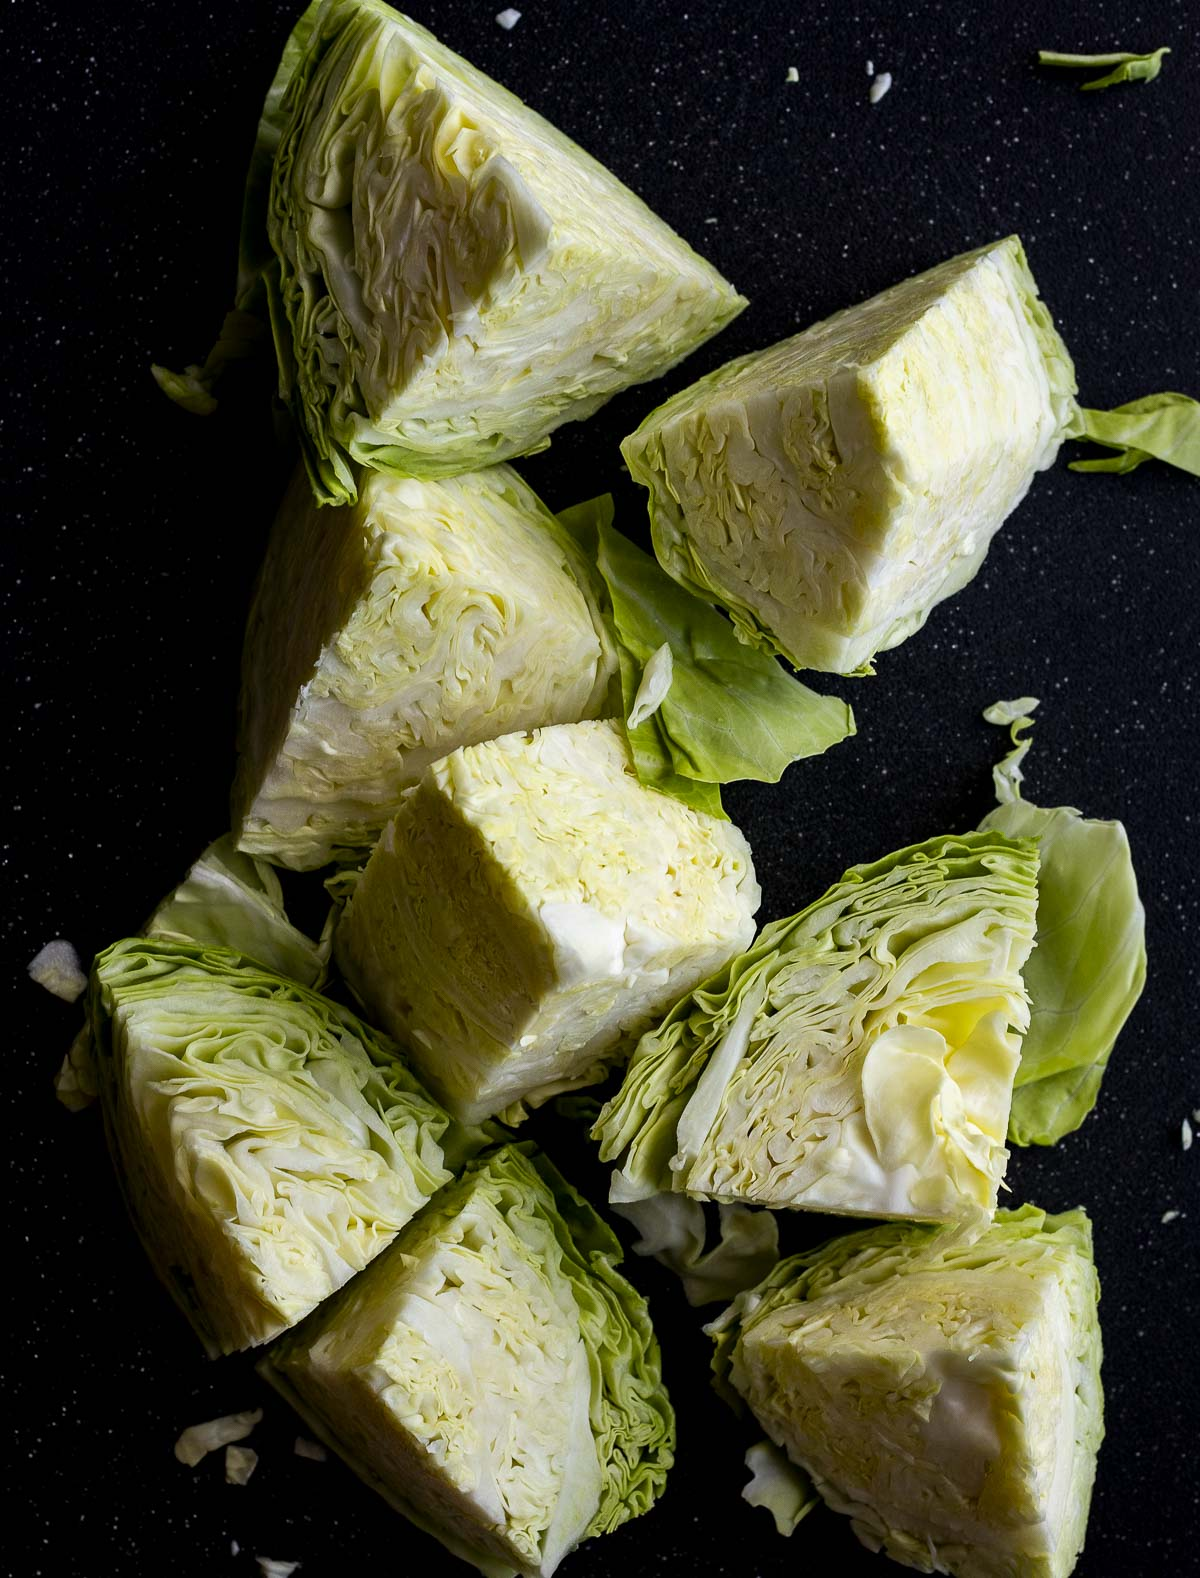 Head of cabbage cut into 8 pieces.